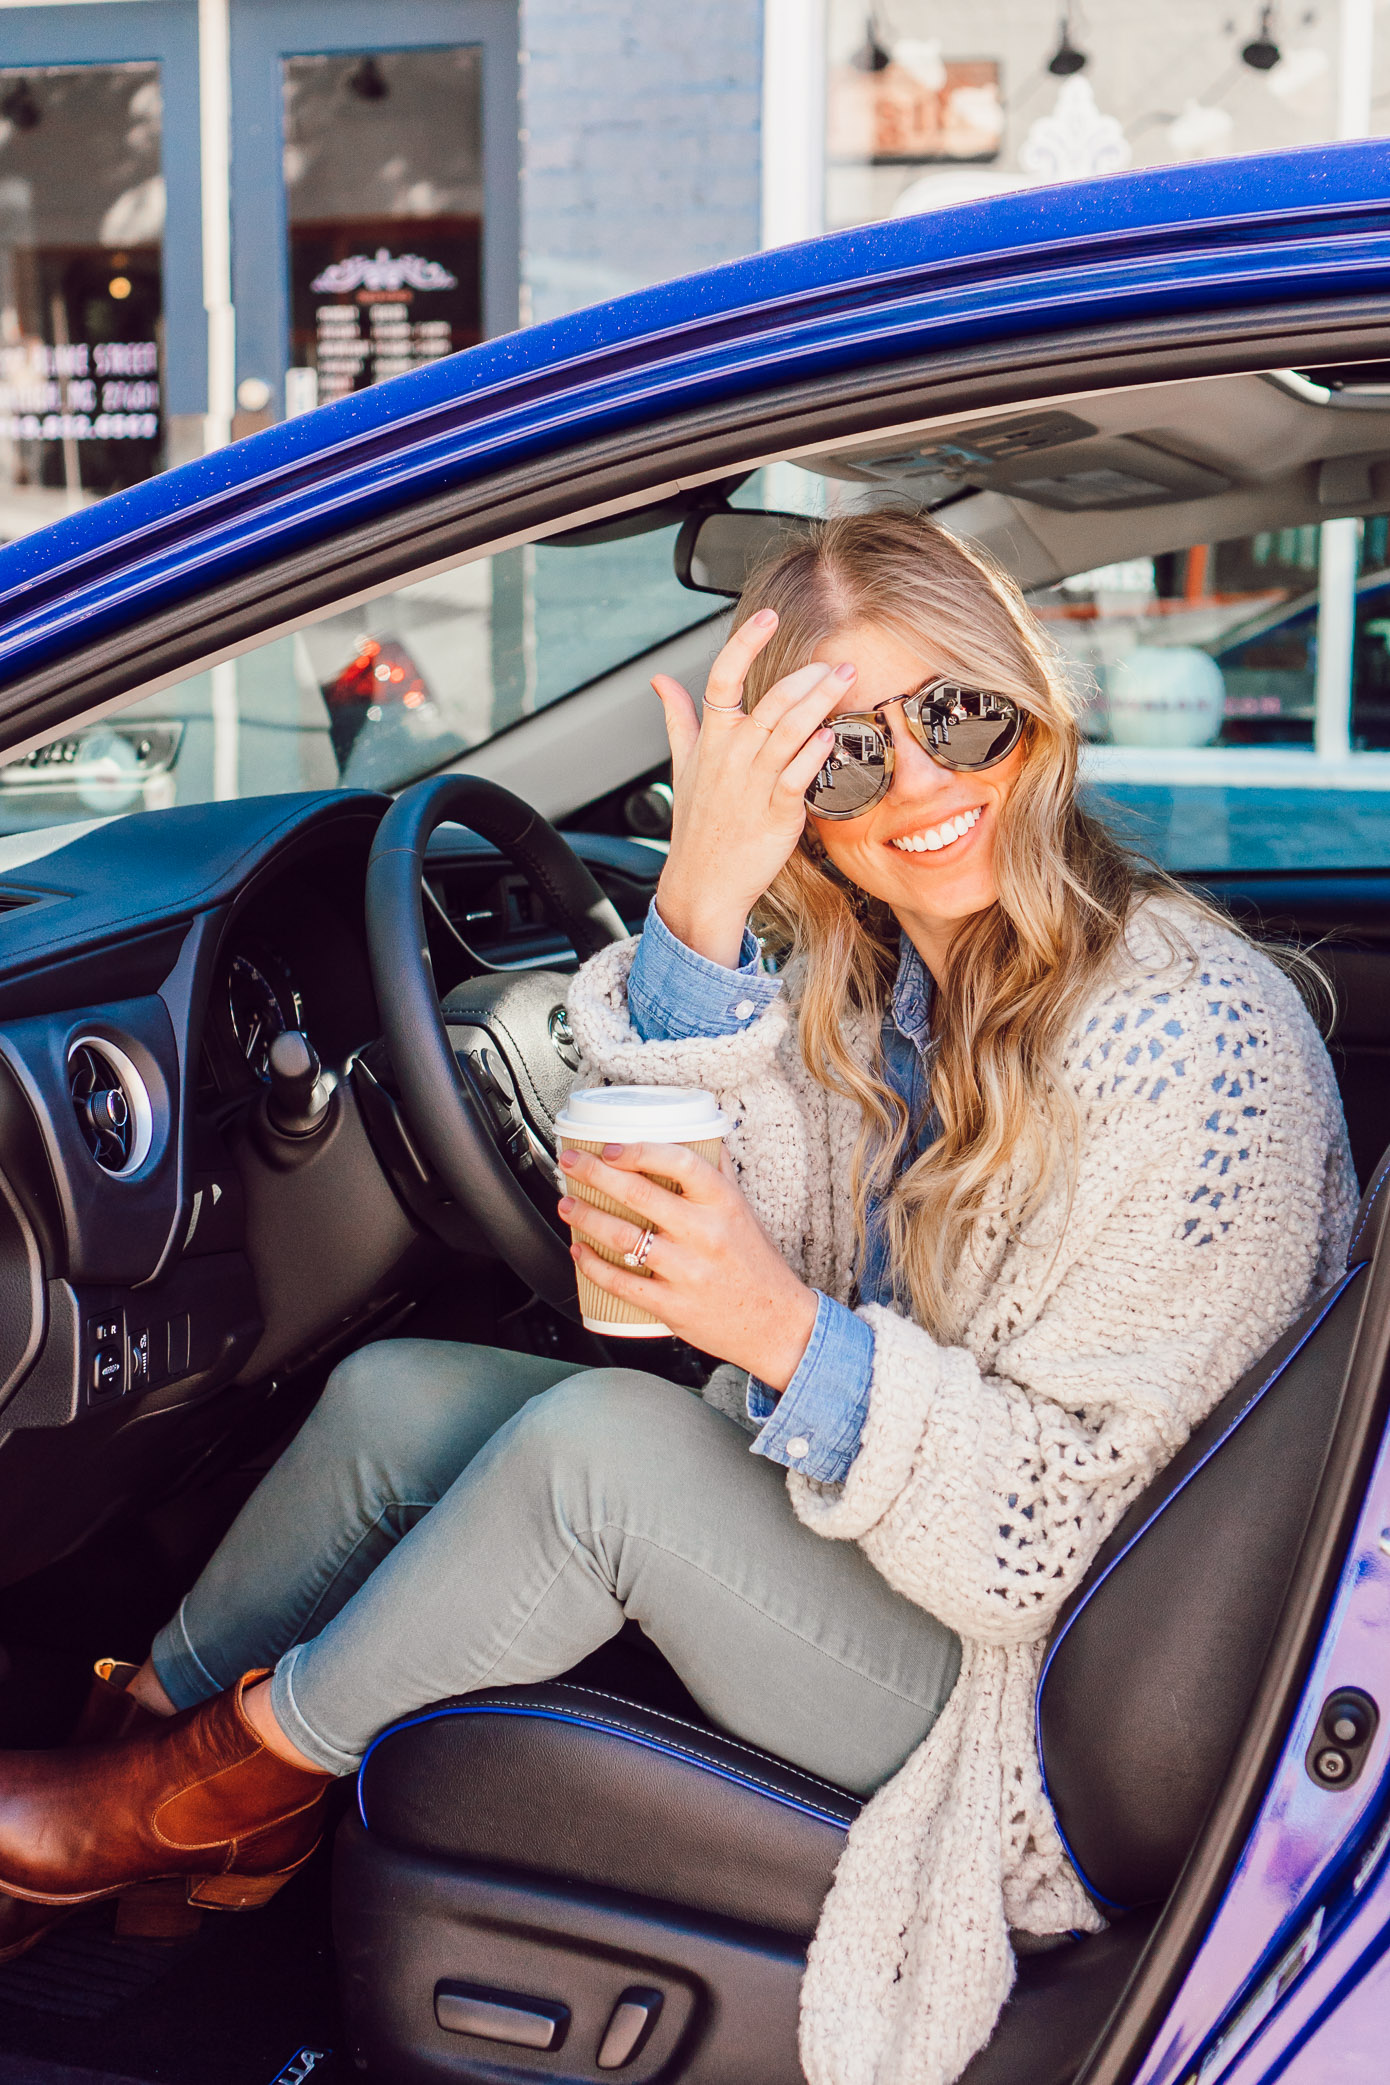 2019 Toyota Corolla   Raleigh Travel Guide, 48 Hour Raleigh NC Itinerary   Raleigh NC Travel Guide featured on Louella Reese